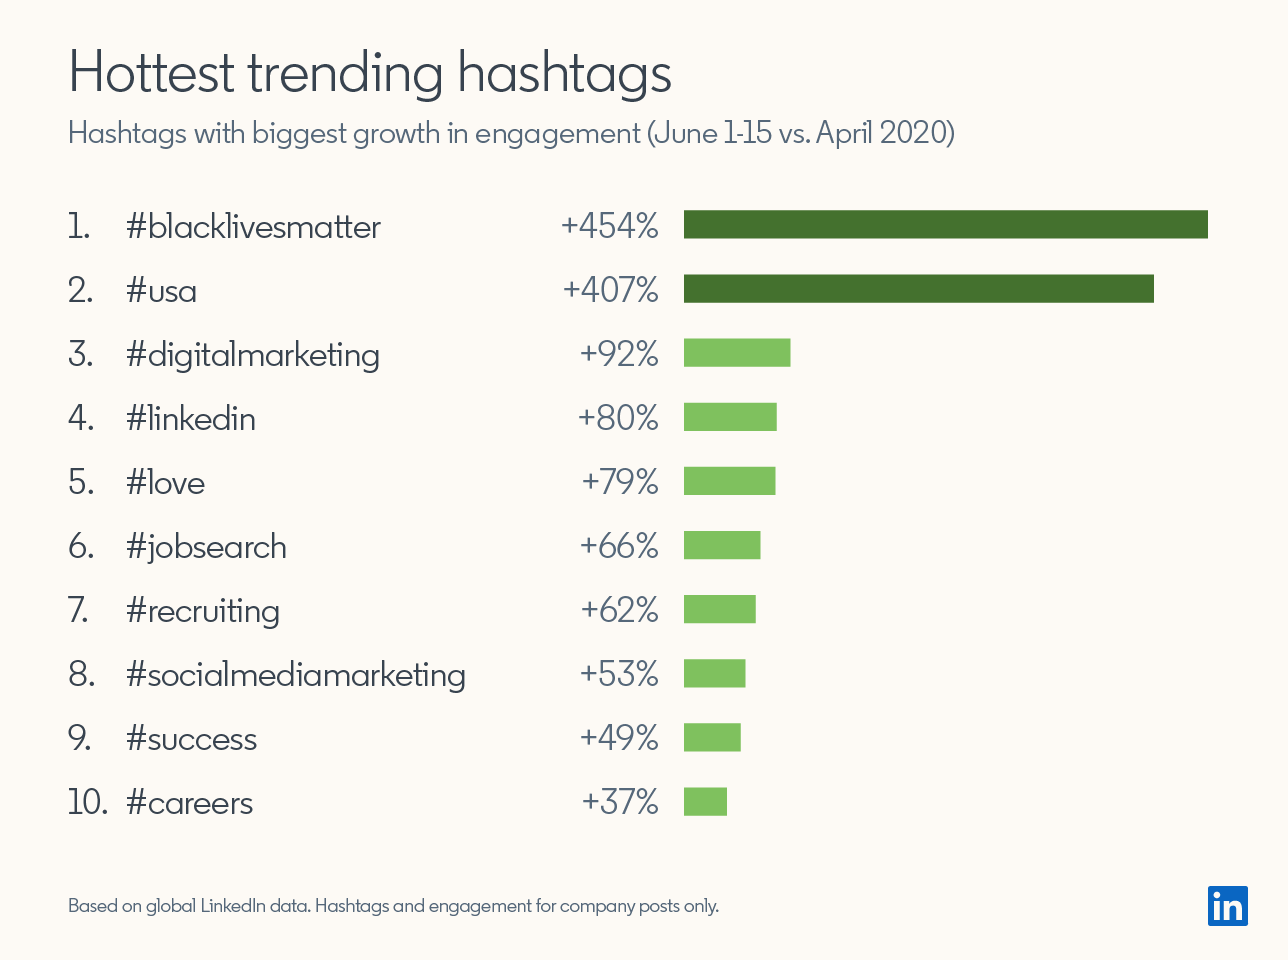 Hottest trending hashtags Hashtags with biggest growth in engagement (June 1-15 2020 vs April 2020)  1. #blacklivesmatter +454% 2. #usa +407% 3. #digitalmarketing +92% 4. #linkedin +80% 5. #love +79% 6. #jobsearch +66% 7. #recruiting +62% 8. #socialmediamarketing +53% 9. #success +49% 10. #careers +37%  Based on global LinkedIn data. Hashtags and engagement for company posts only.